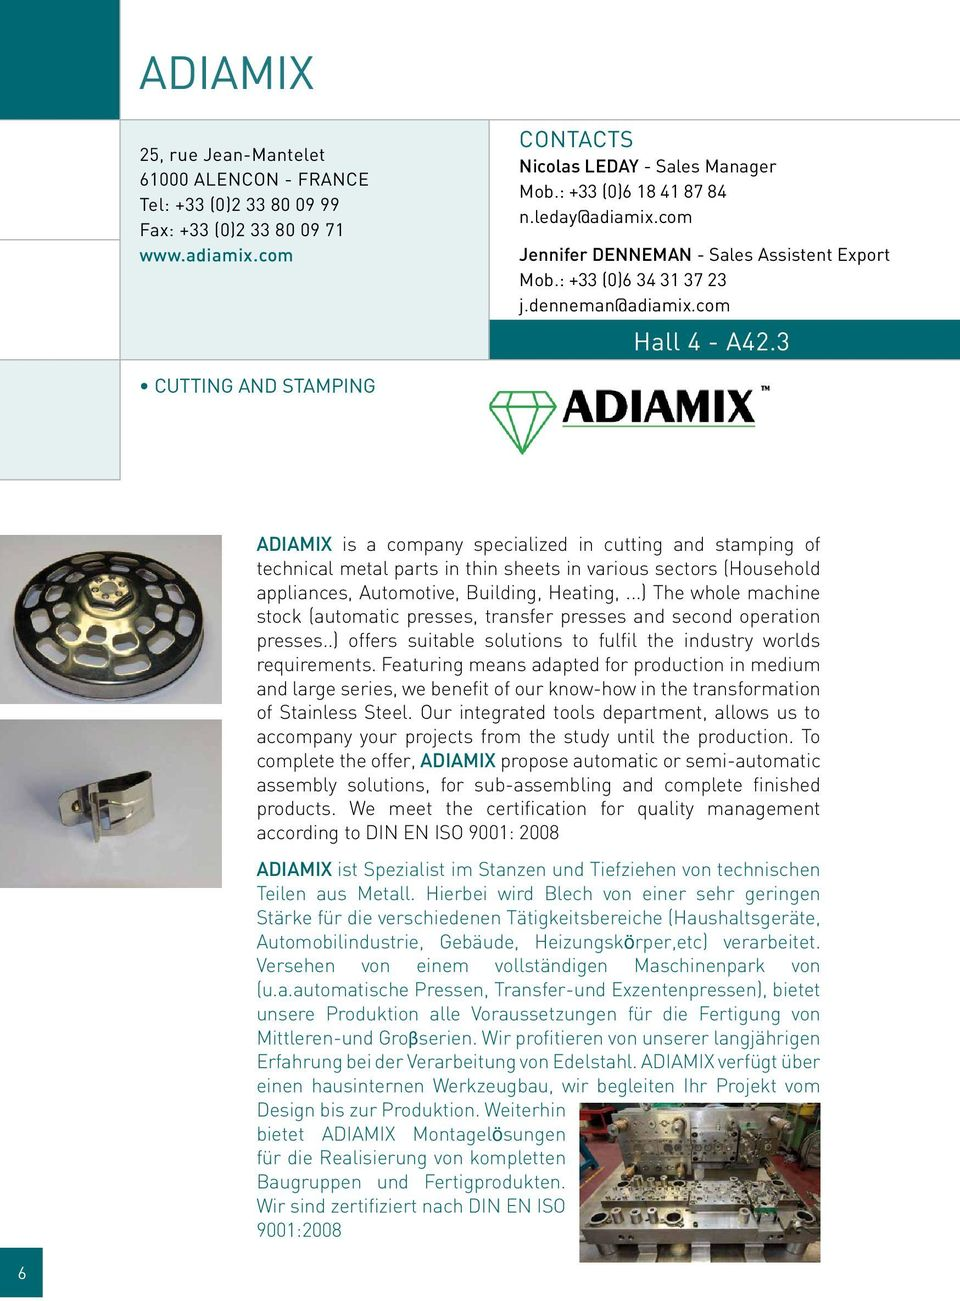 3 Cutting and stamping ADIAMIX is a company specialized in cutting and stamping of technical metal parts in thin sheets in various sectors (Household appliances, Automotive, Building, Heating,.